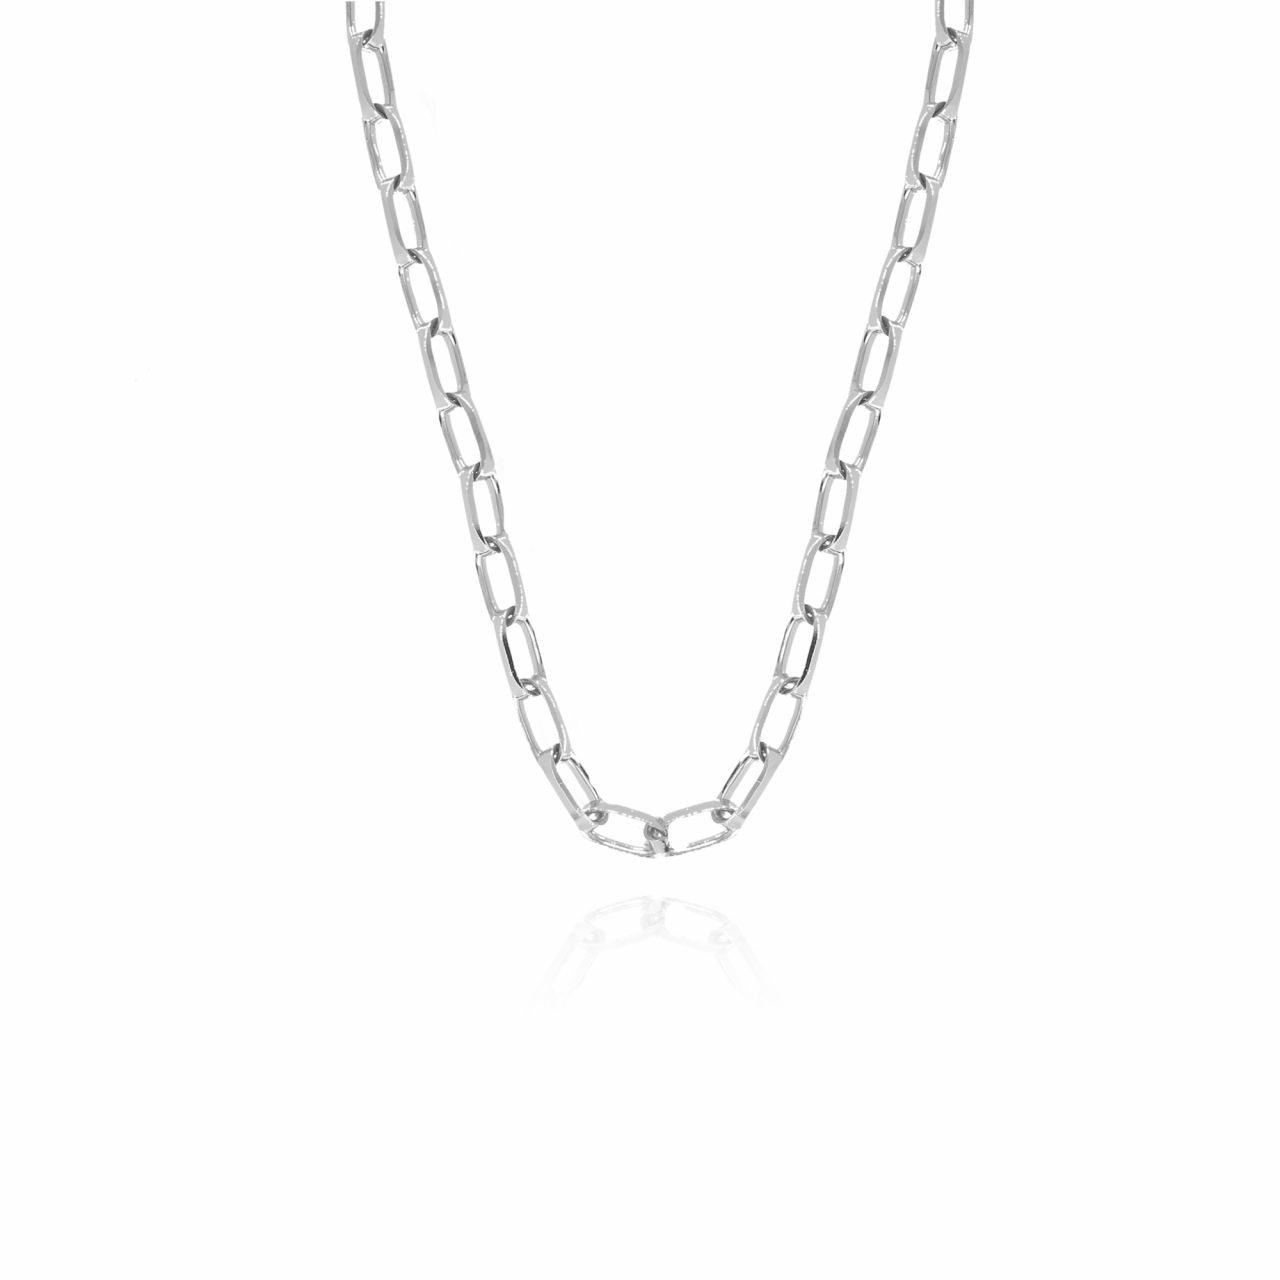 Silver closed forever L chain necklace